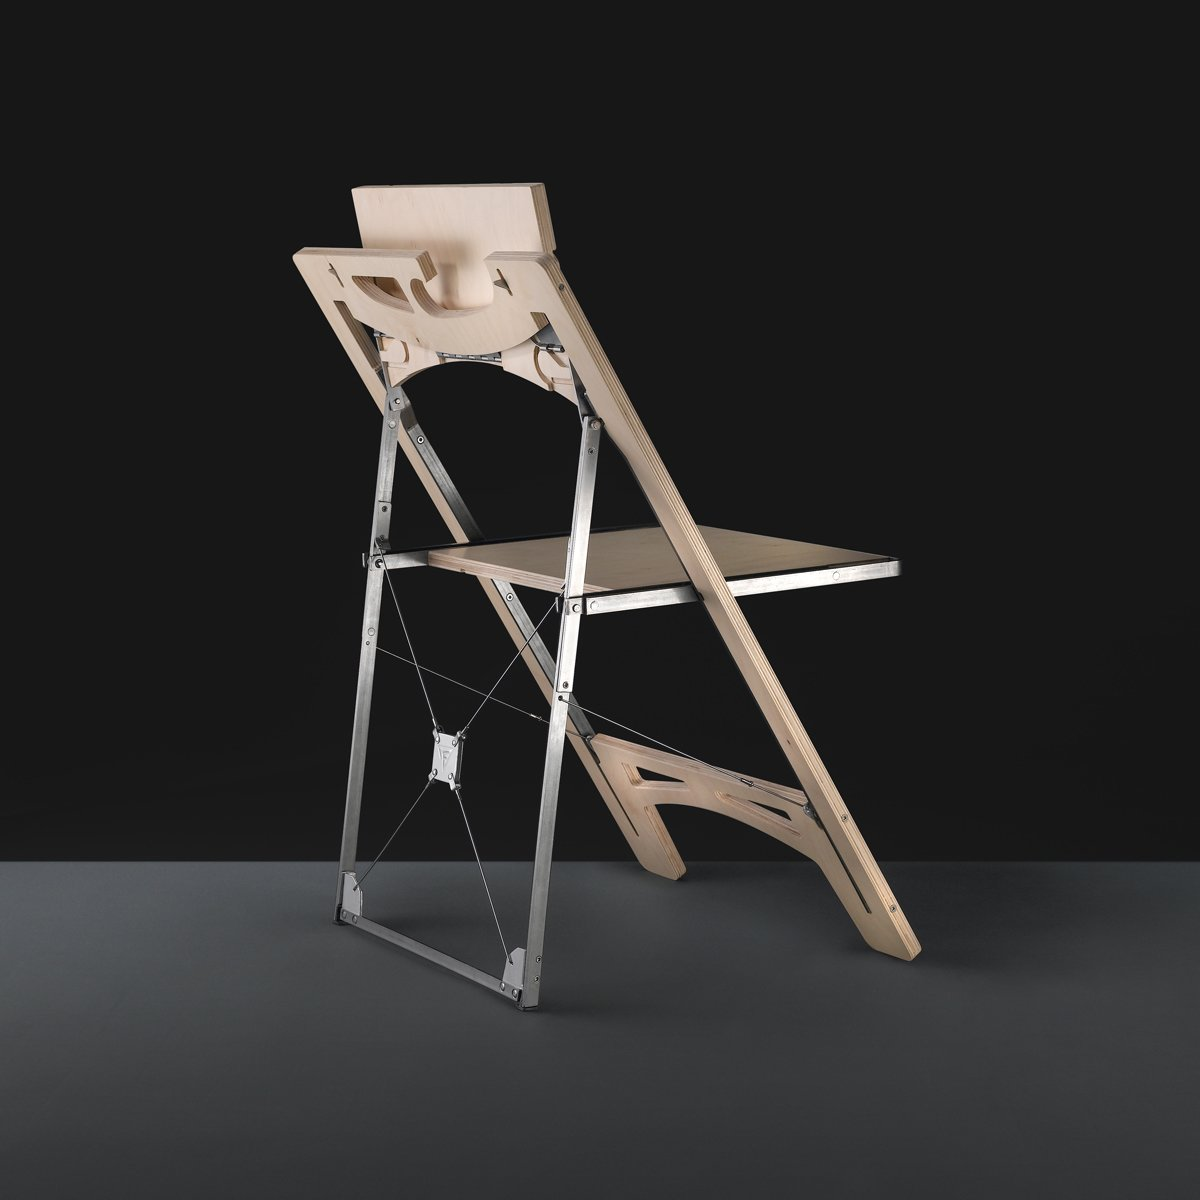 The Tilt chair by Folditure.  Small Spaces by Monica Suarez from More Hideaway Furniture from Folditure